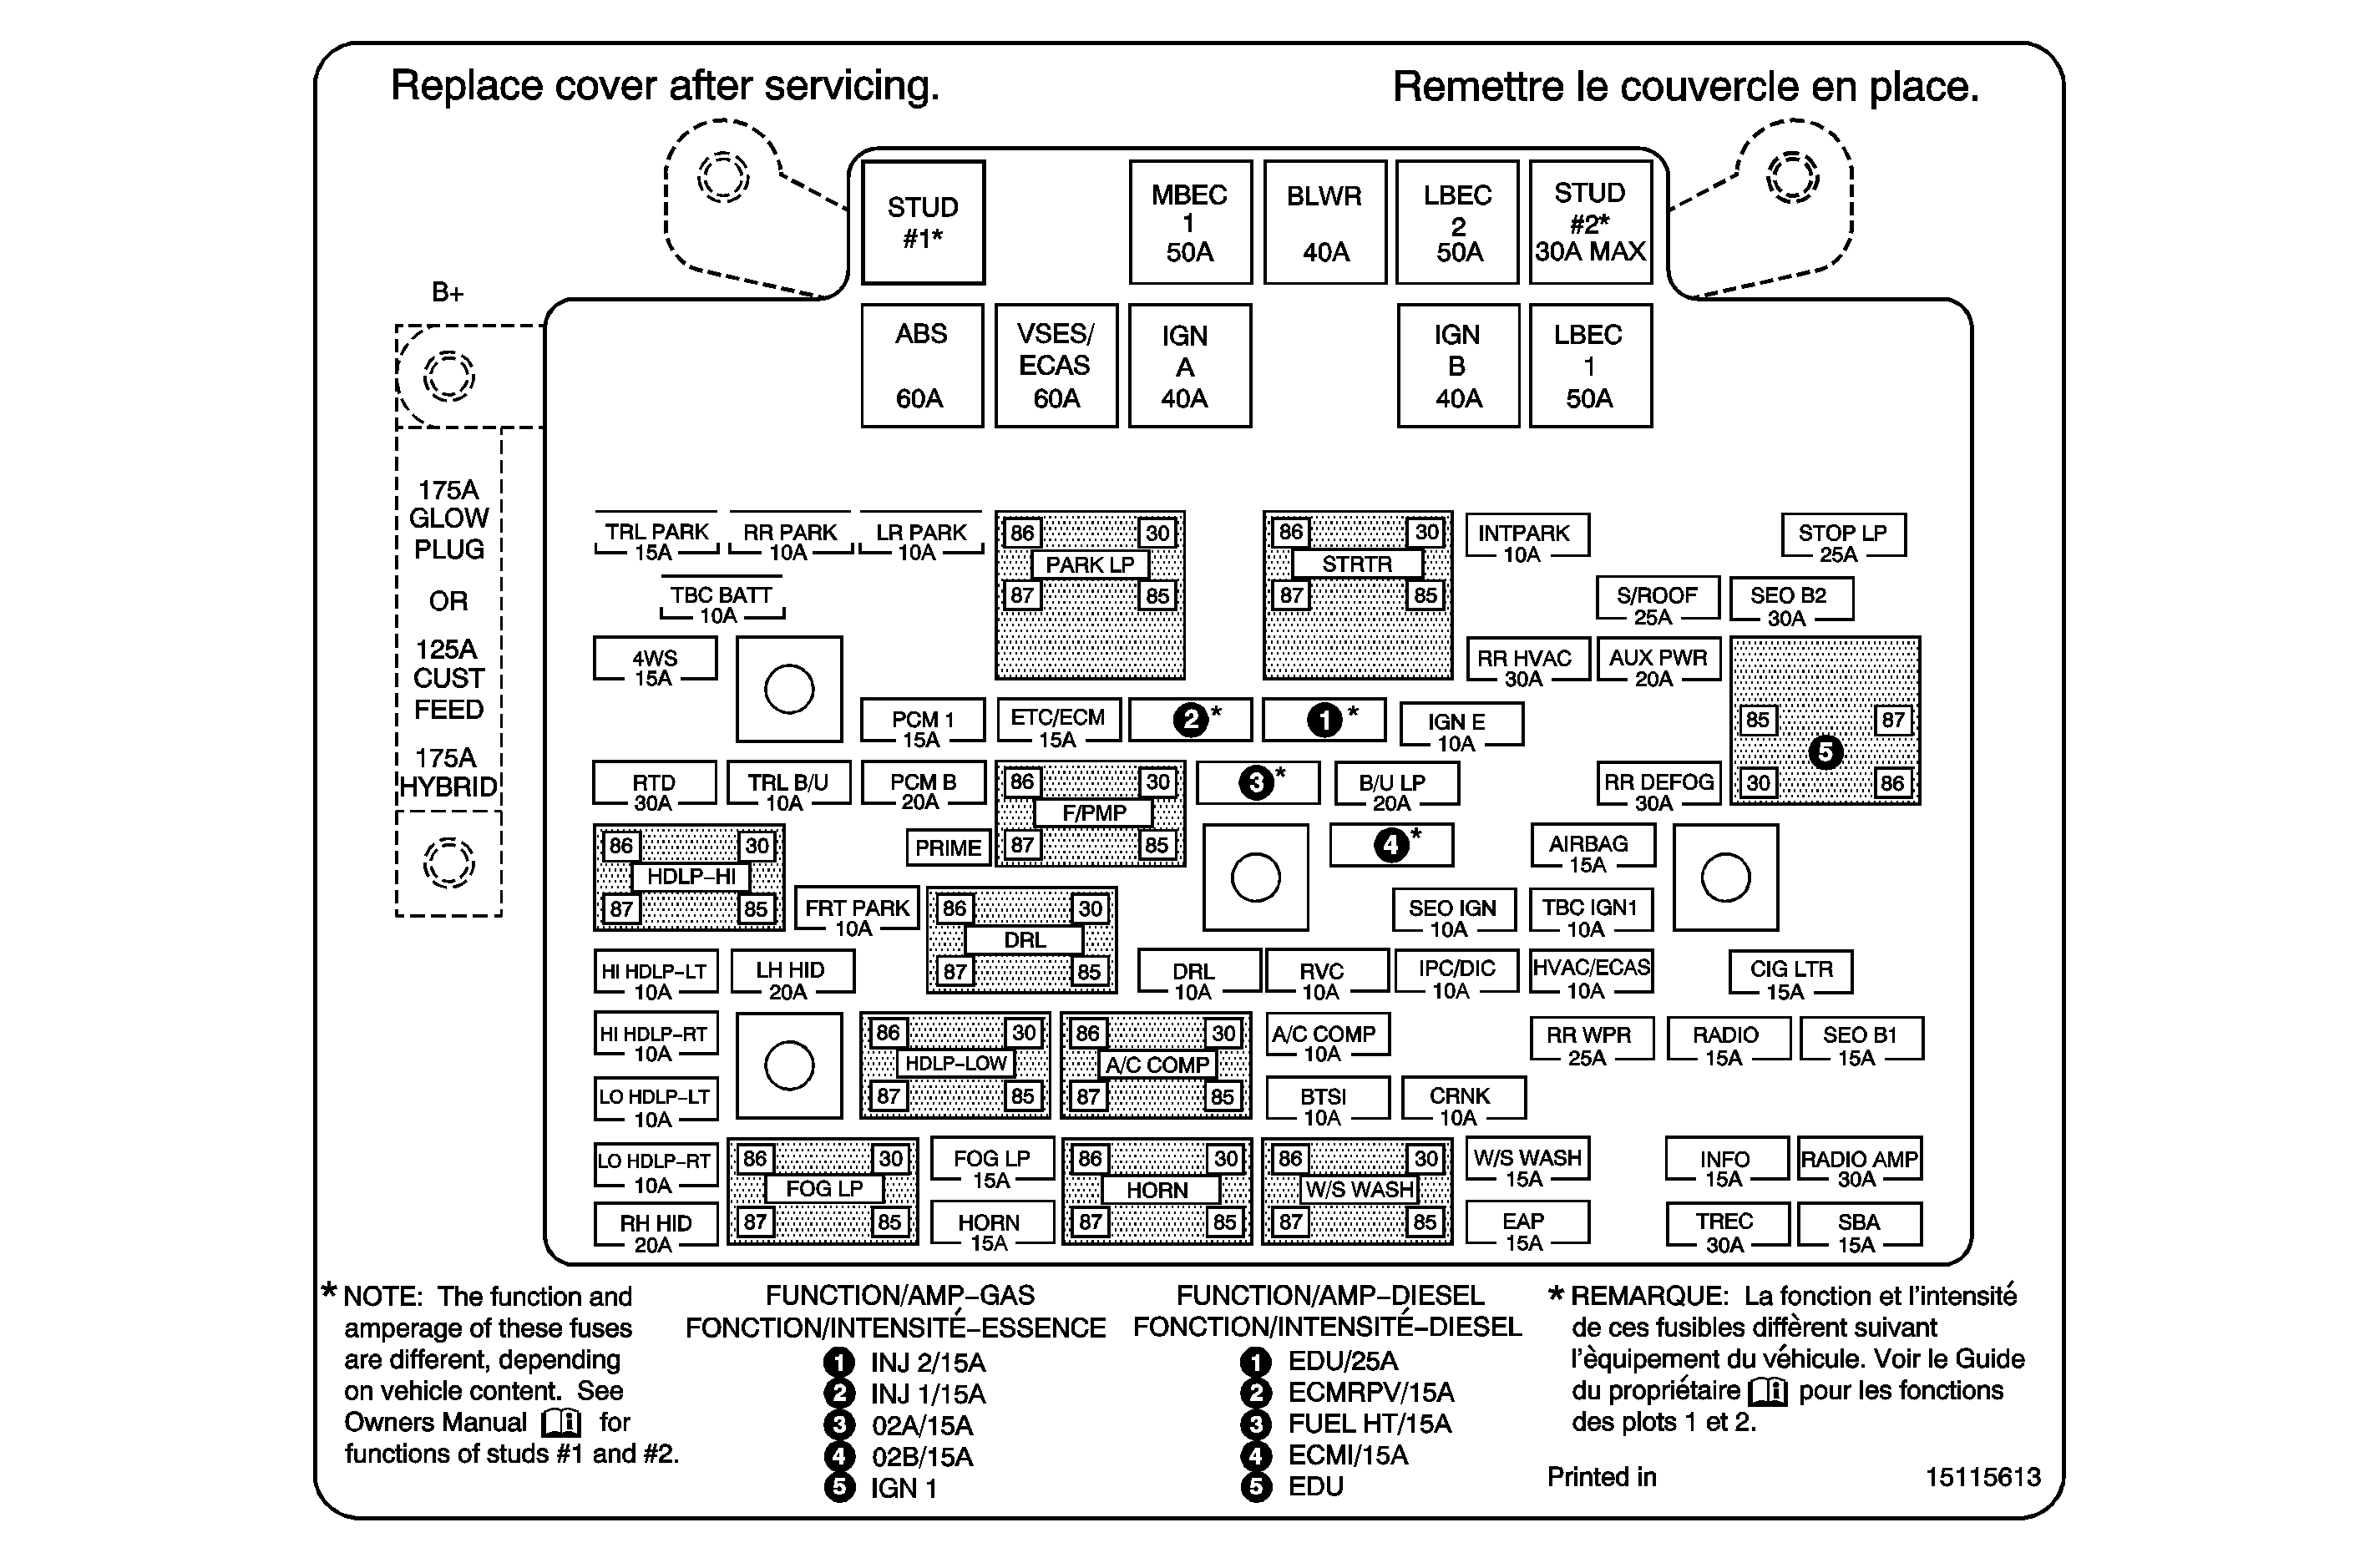 2007 gmc envoy fuse box diagram detailed schematics diagram rh  yogajourneymd com 2004 GMC Yukon Fuse Box Diagram 2002 GMC Envoy Fuse Box  Diagram